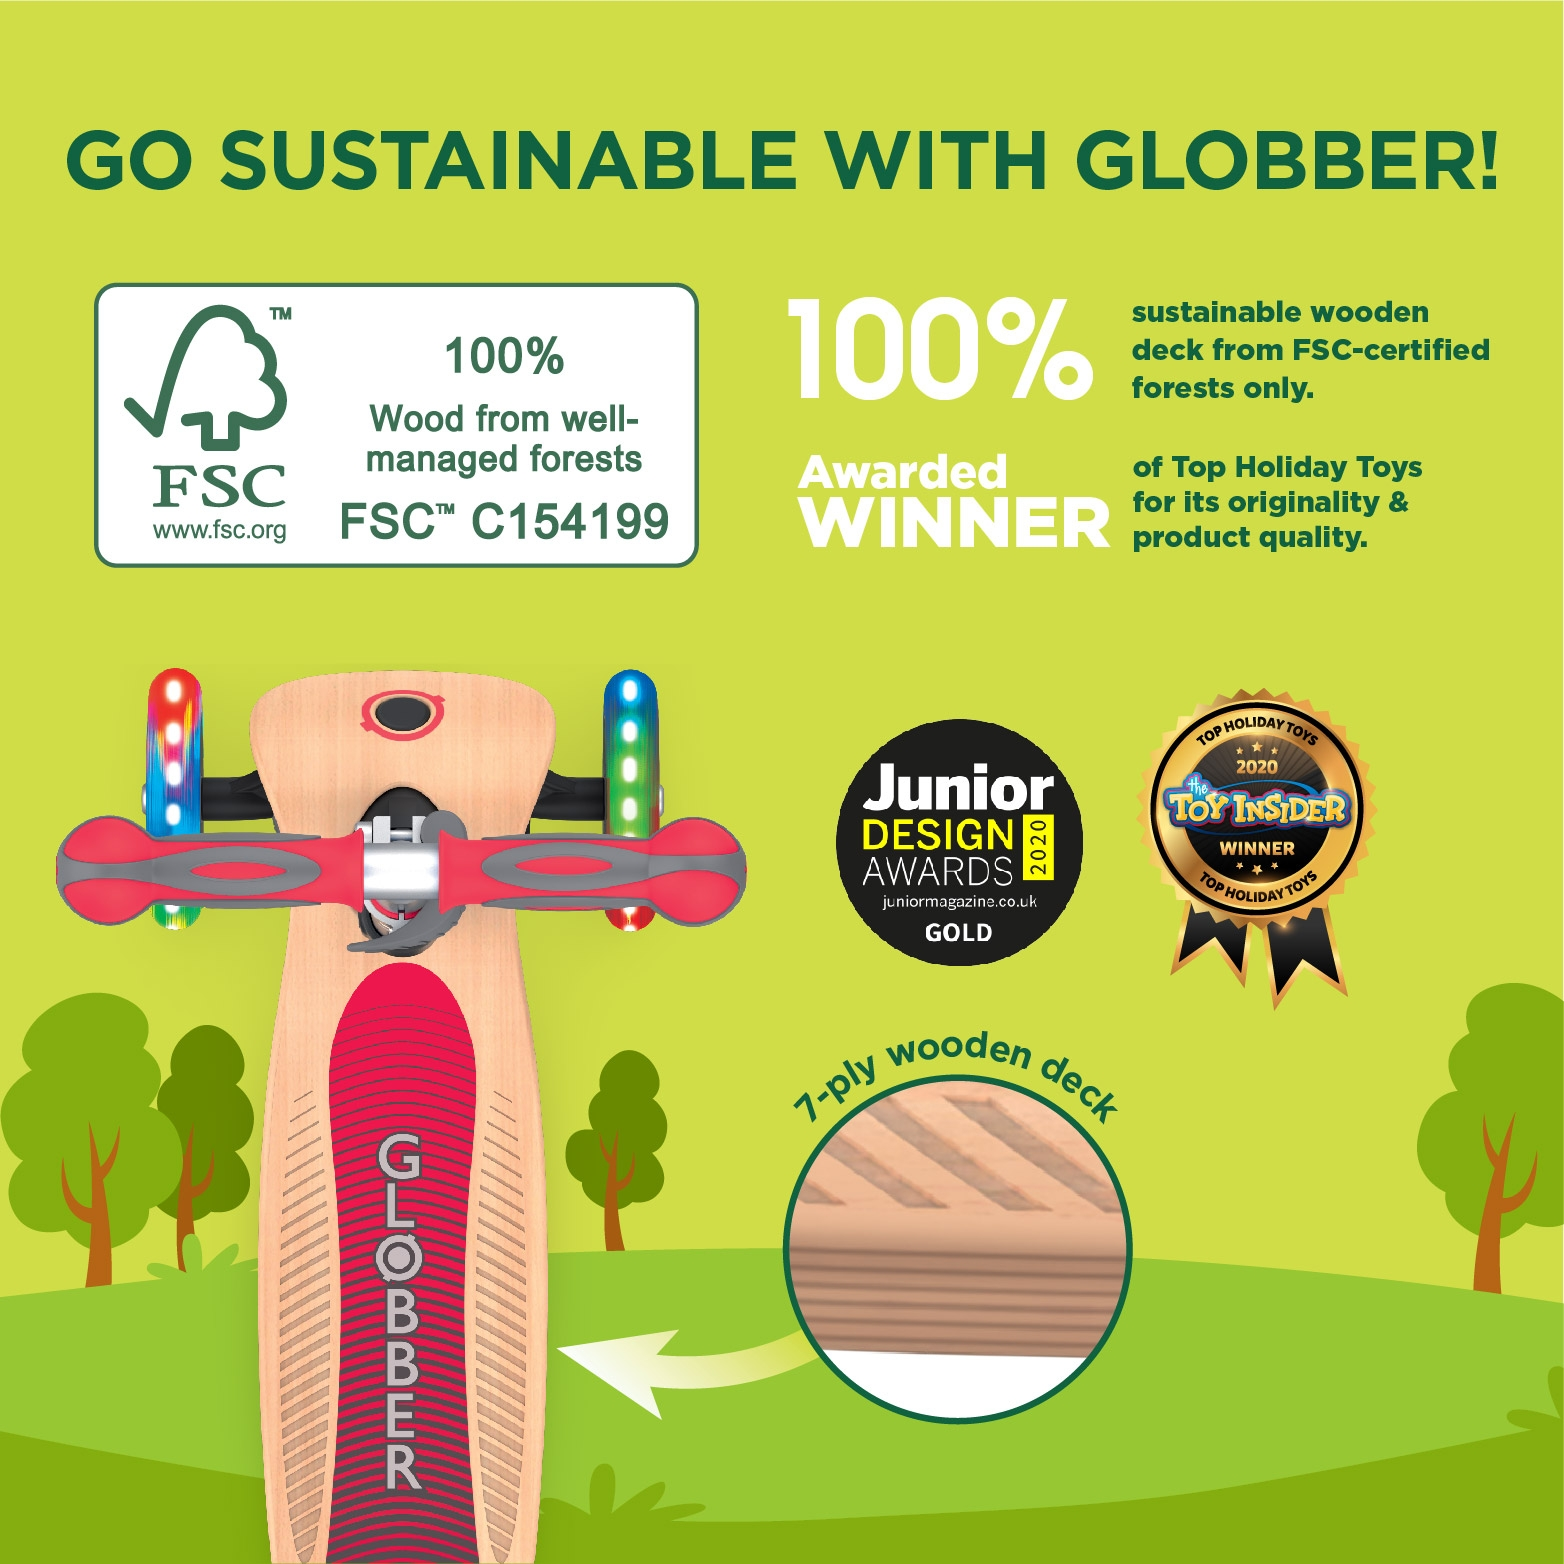 Globber-PRIMO-FOLDABLE-WOOD-LIGHTS-3-wheel-scooter-for-kids-FSC-certified-7-ply-wooden-scooter-deck